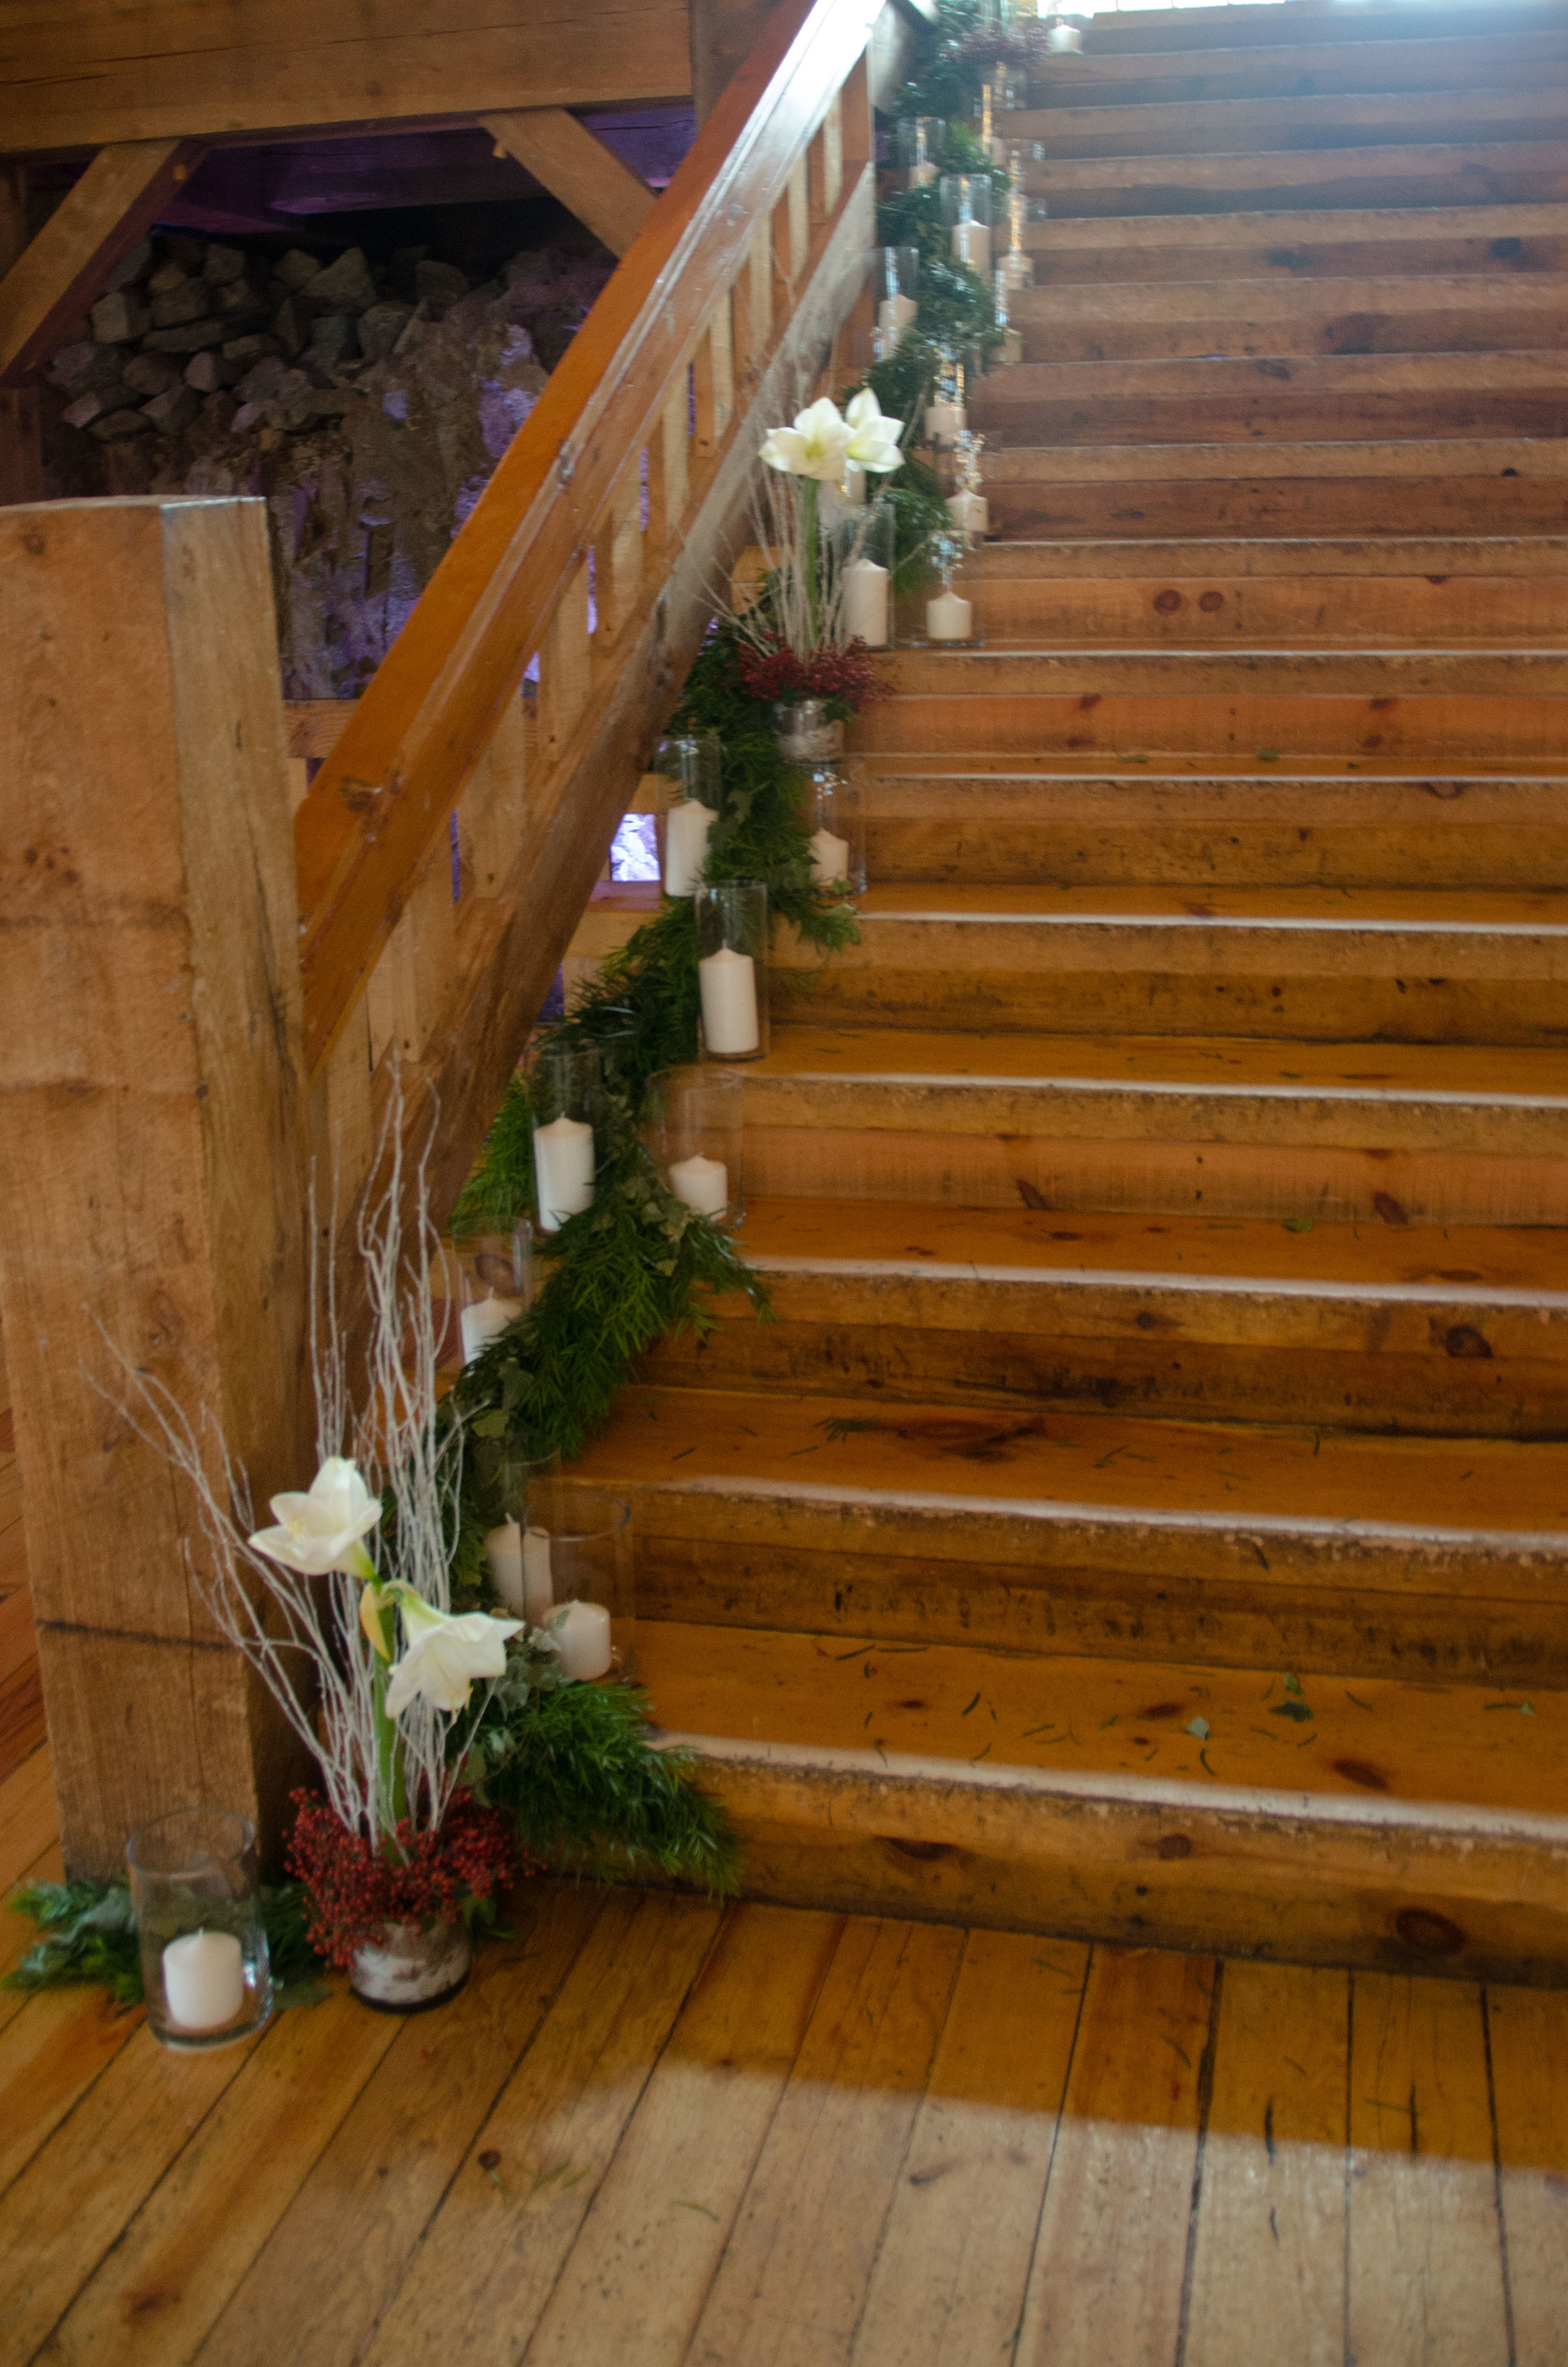 lawton stair case and garland.jpg